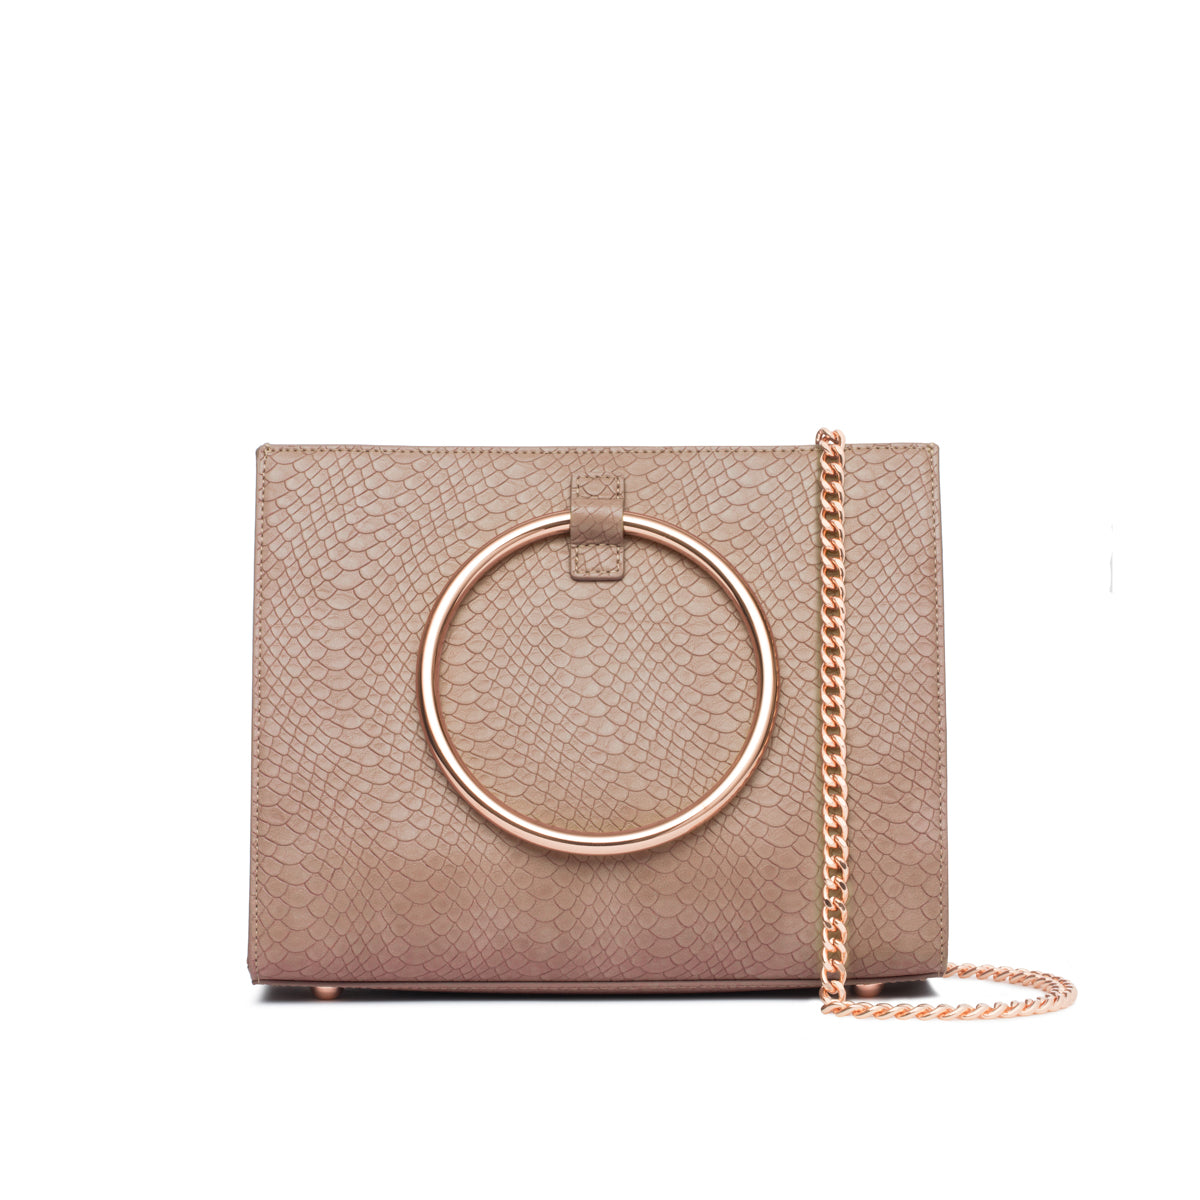 Moda Top Handle Bag (Dusky Rose/Rose Gold)